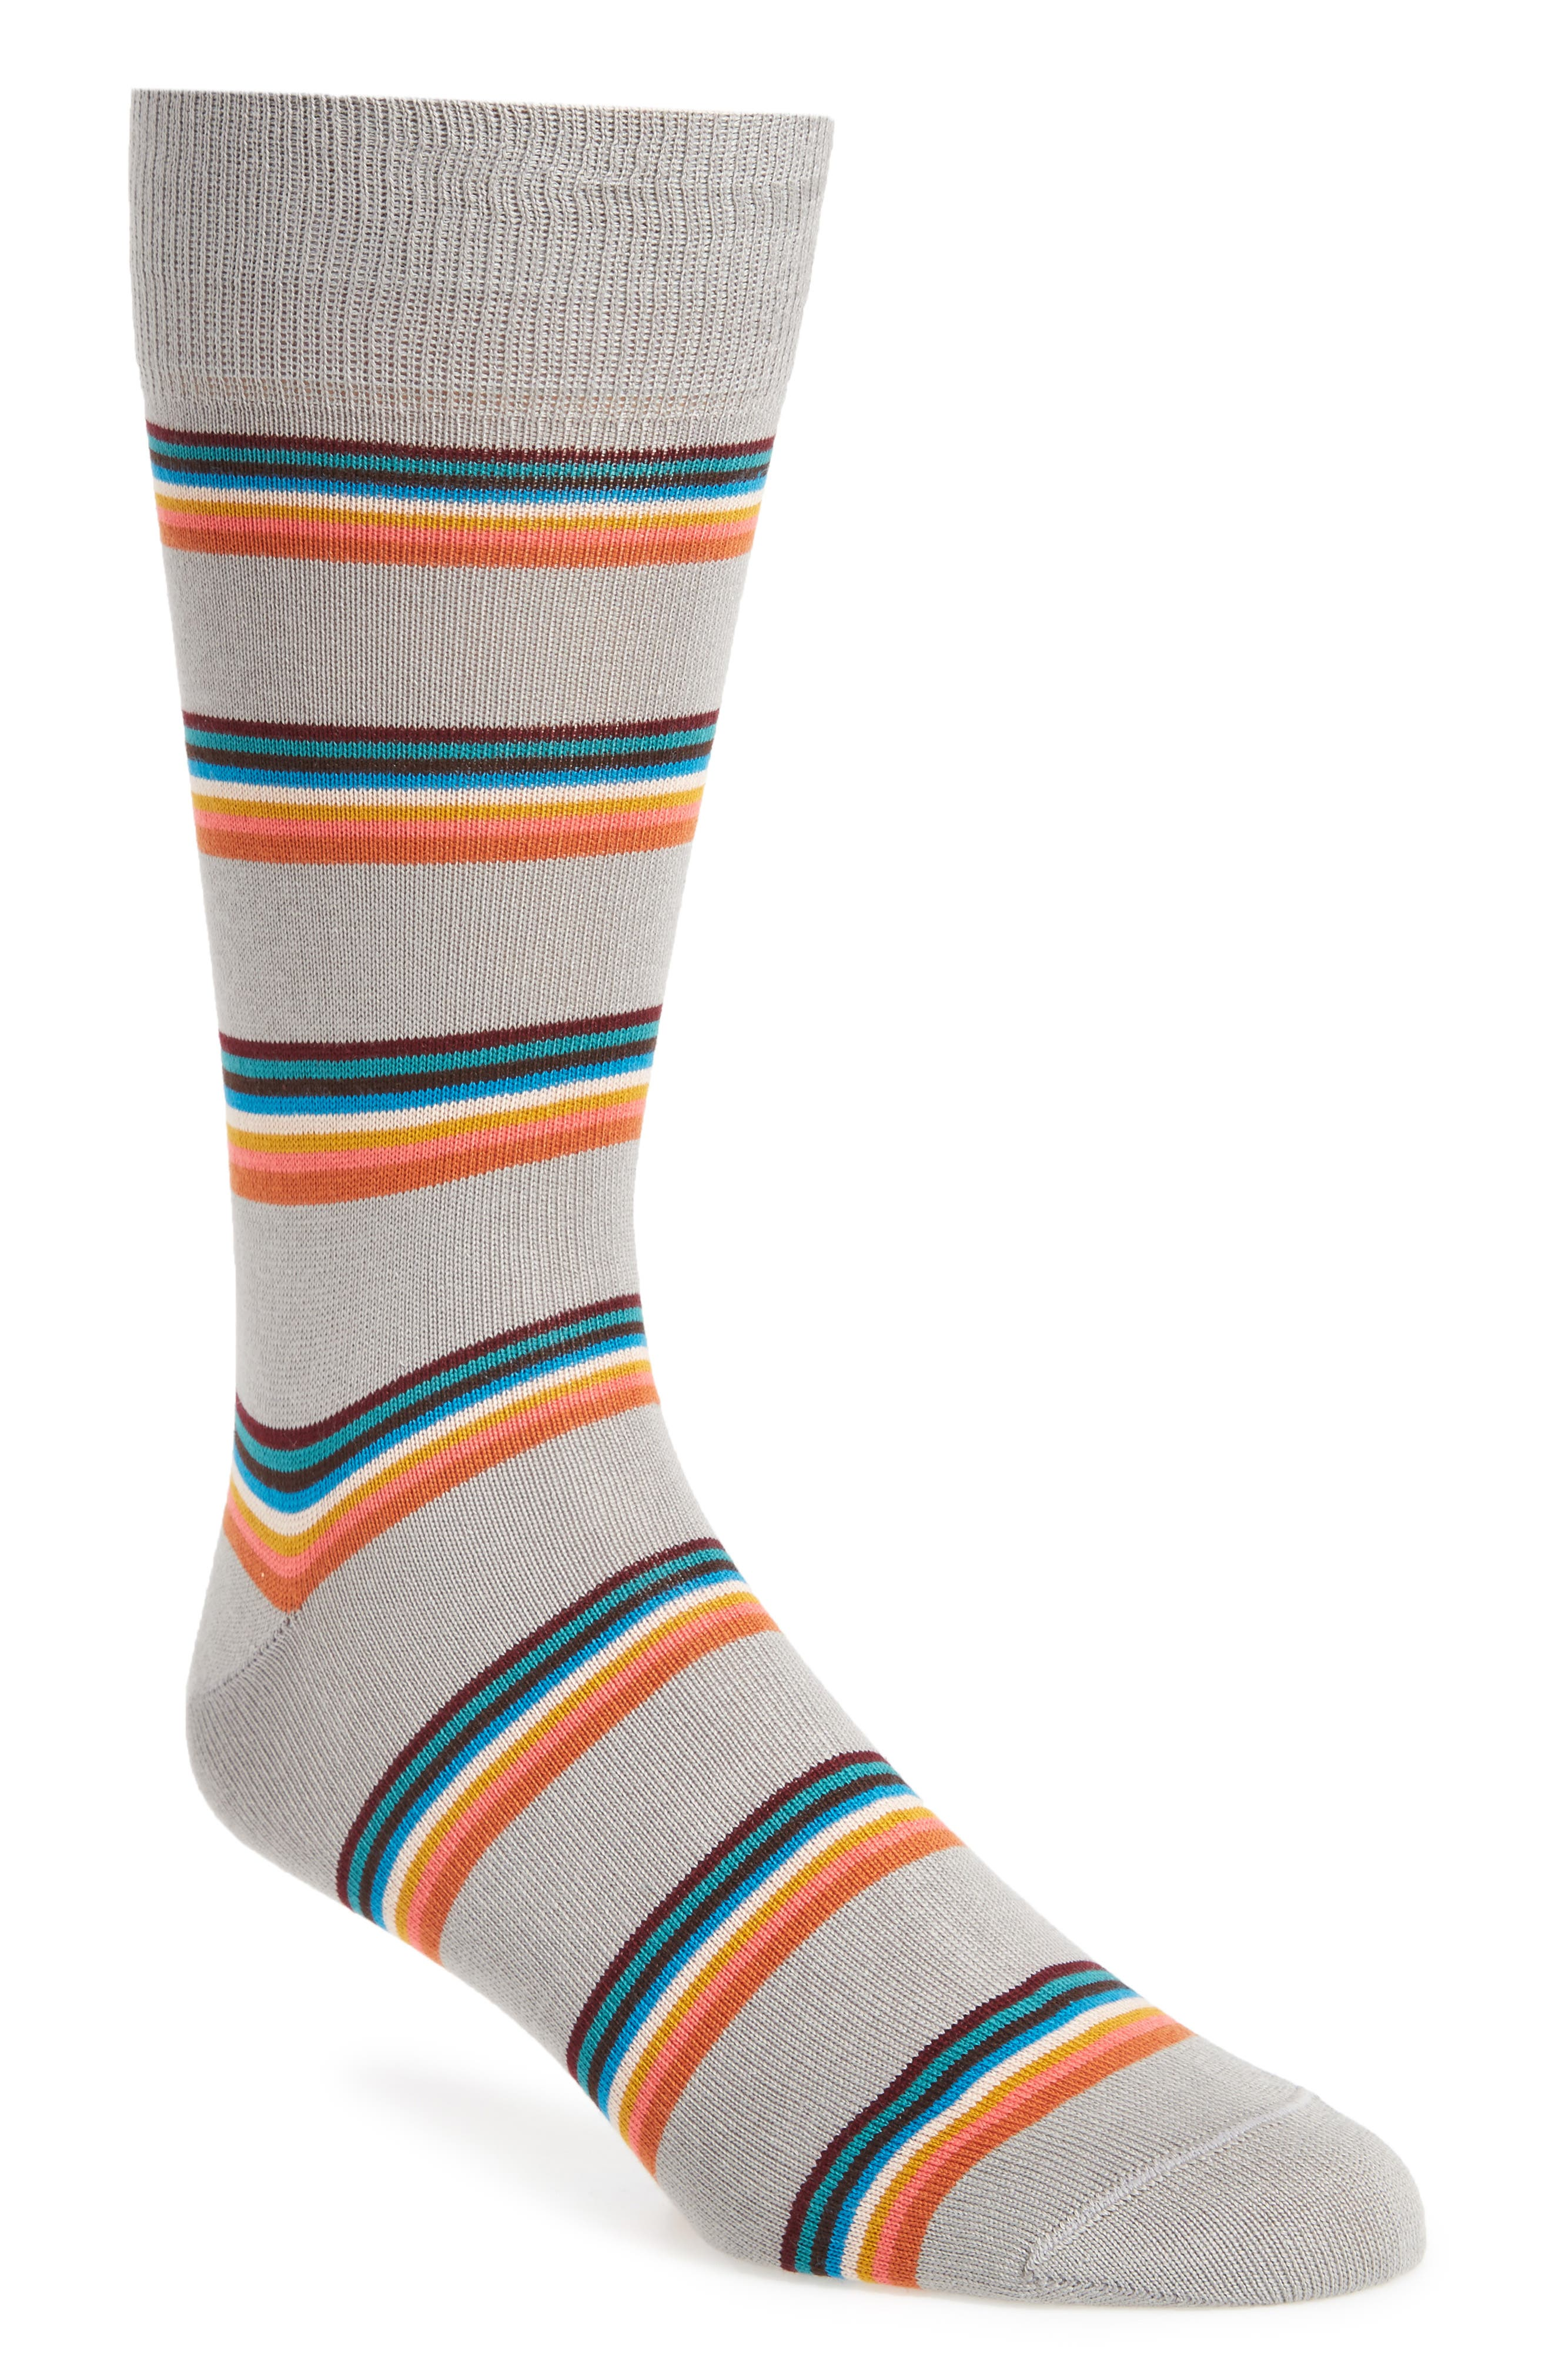 Stripe Socks,                         Main,                         color, 070